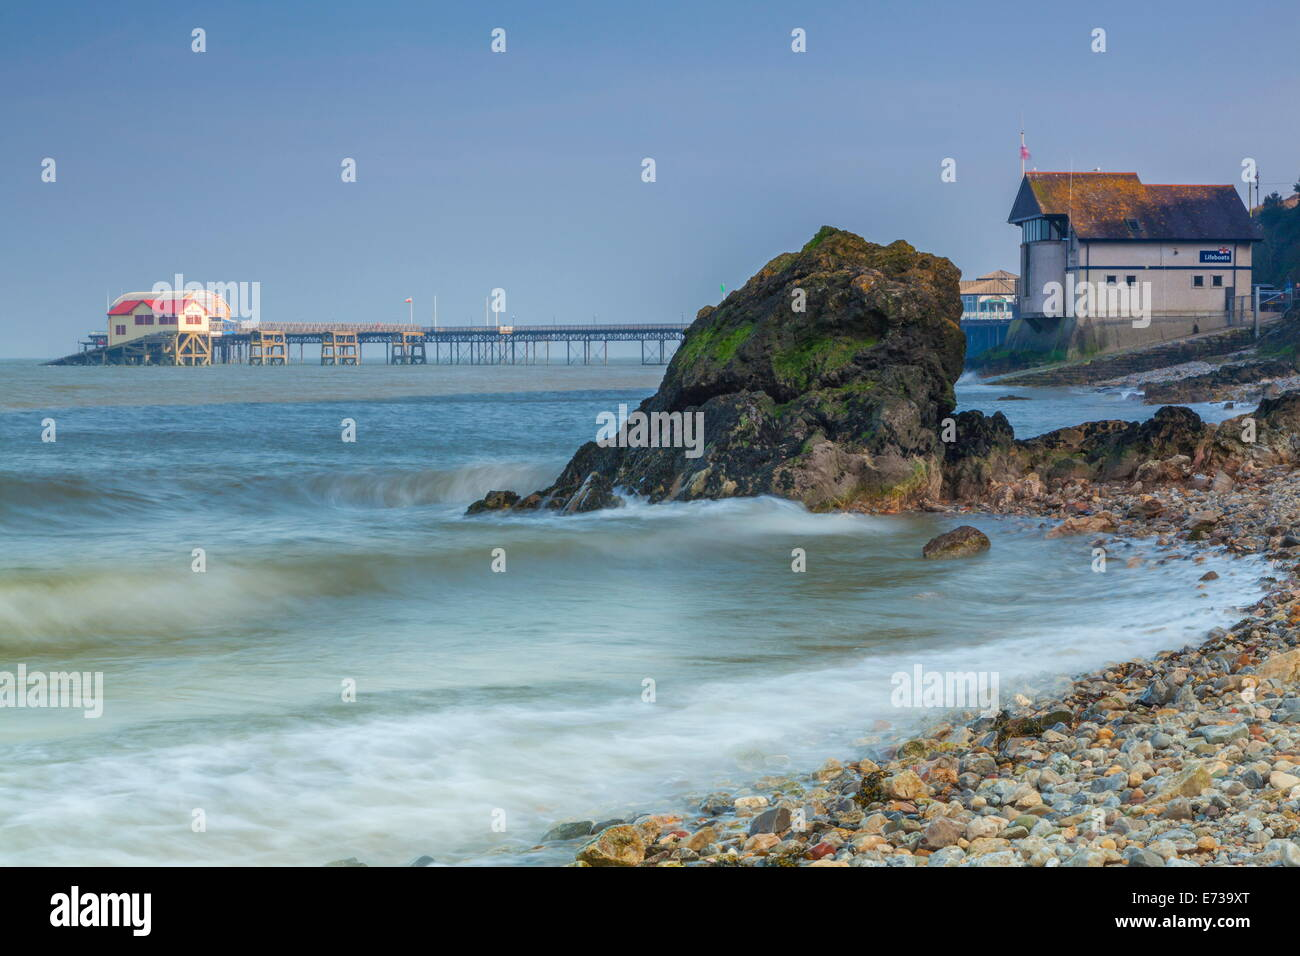 Mumbles Pier, Gower, Swansea, Wales, United Kingdom, Europe - Stock Image